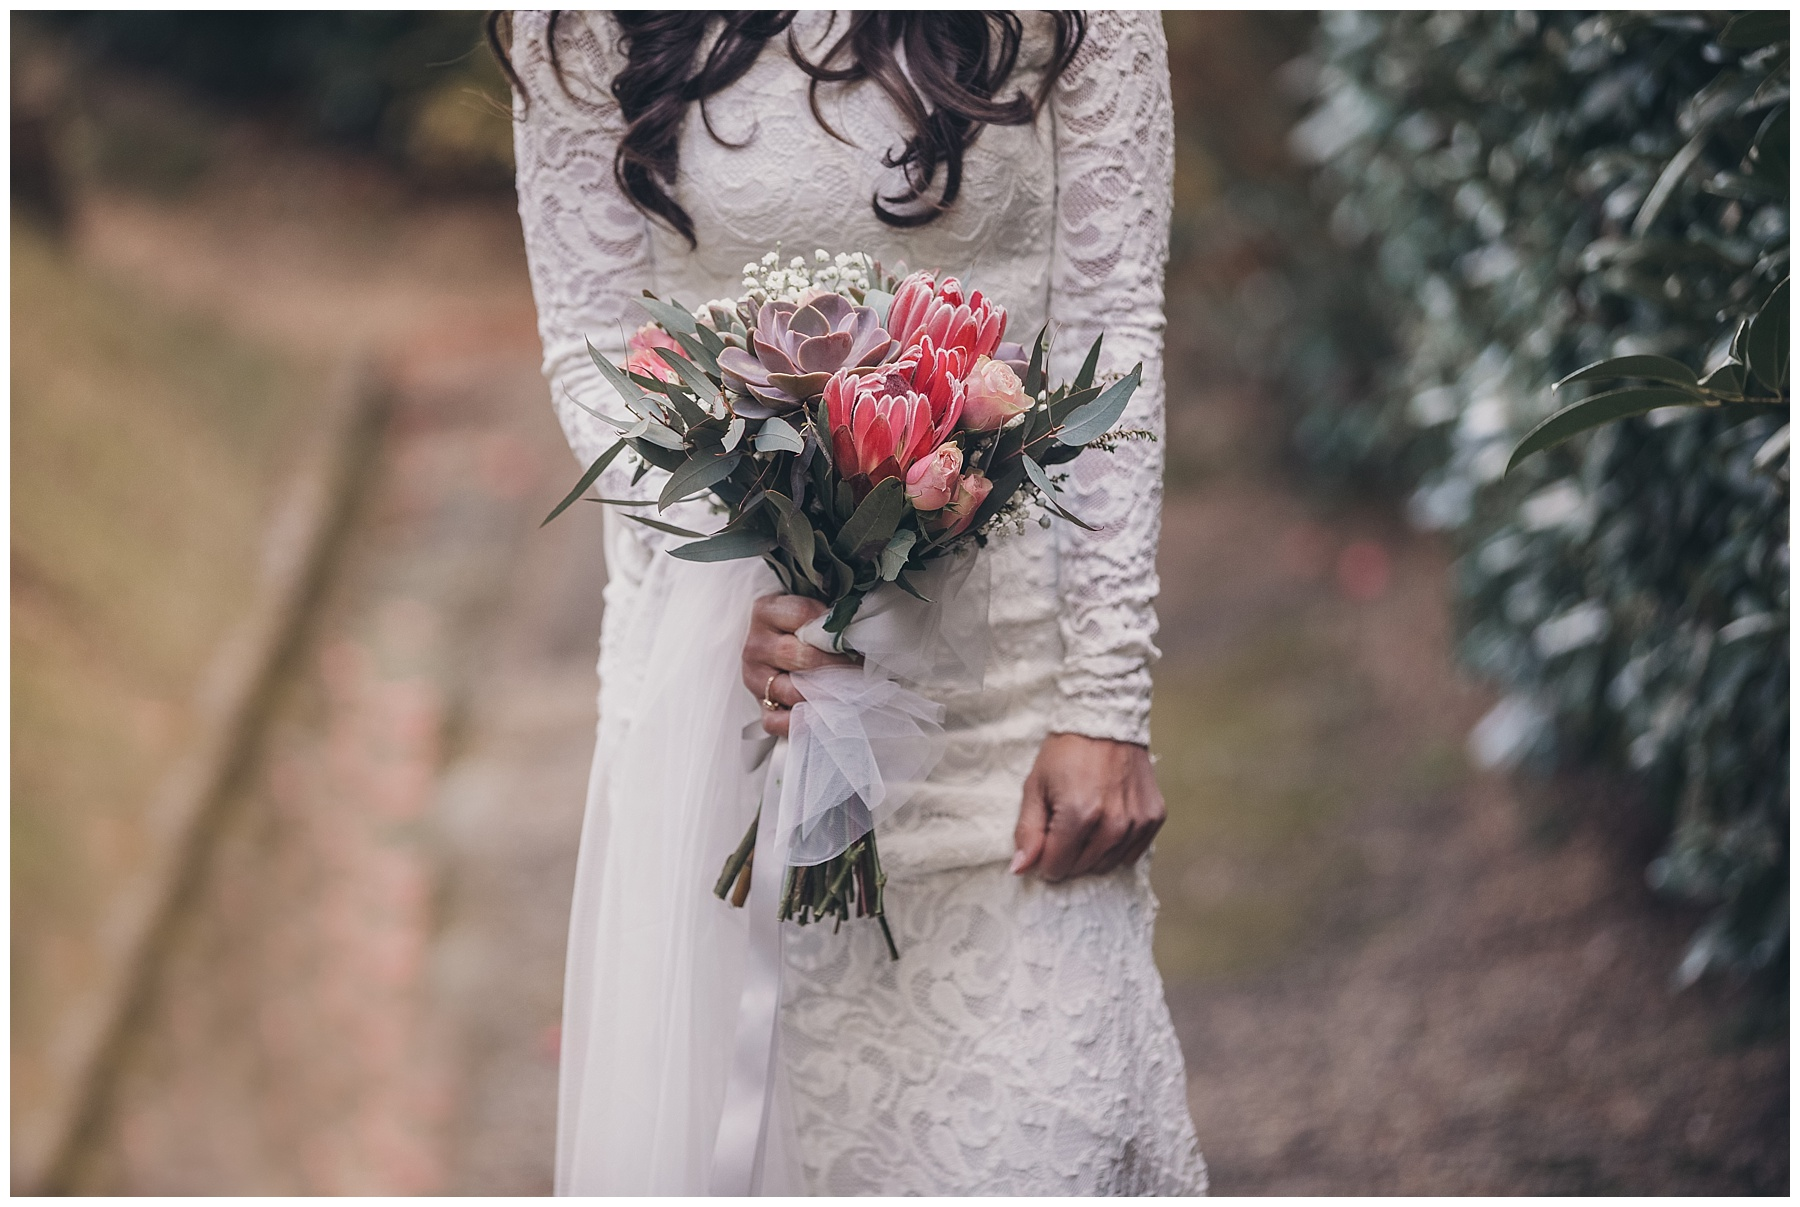 Bridal bouquet inspiration with succulents, australian natives, baby's breath and pink roses